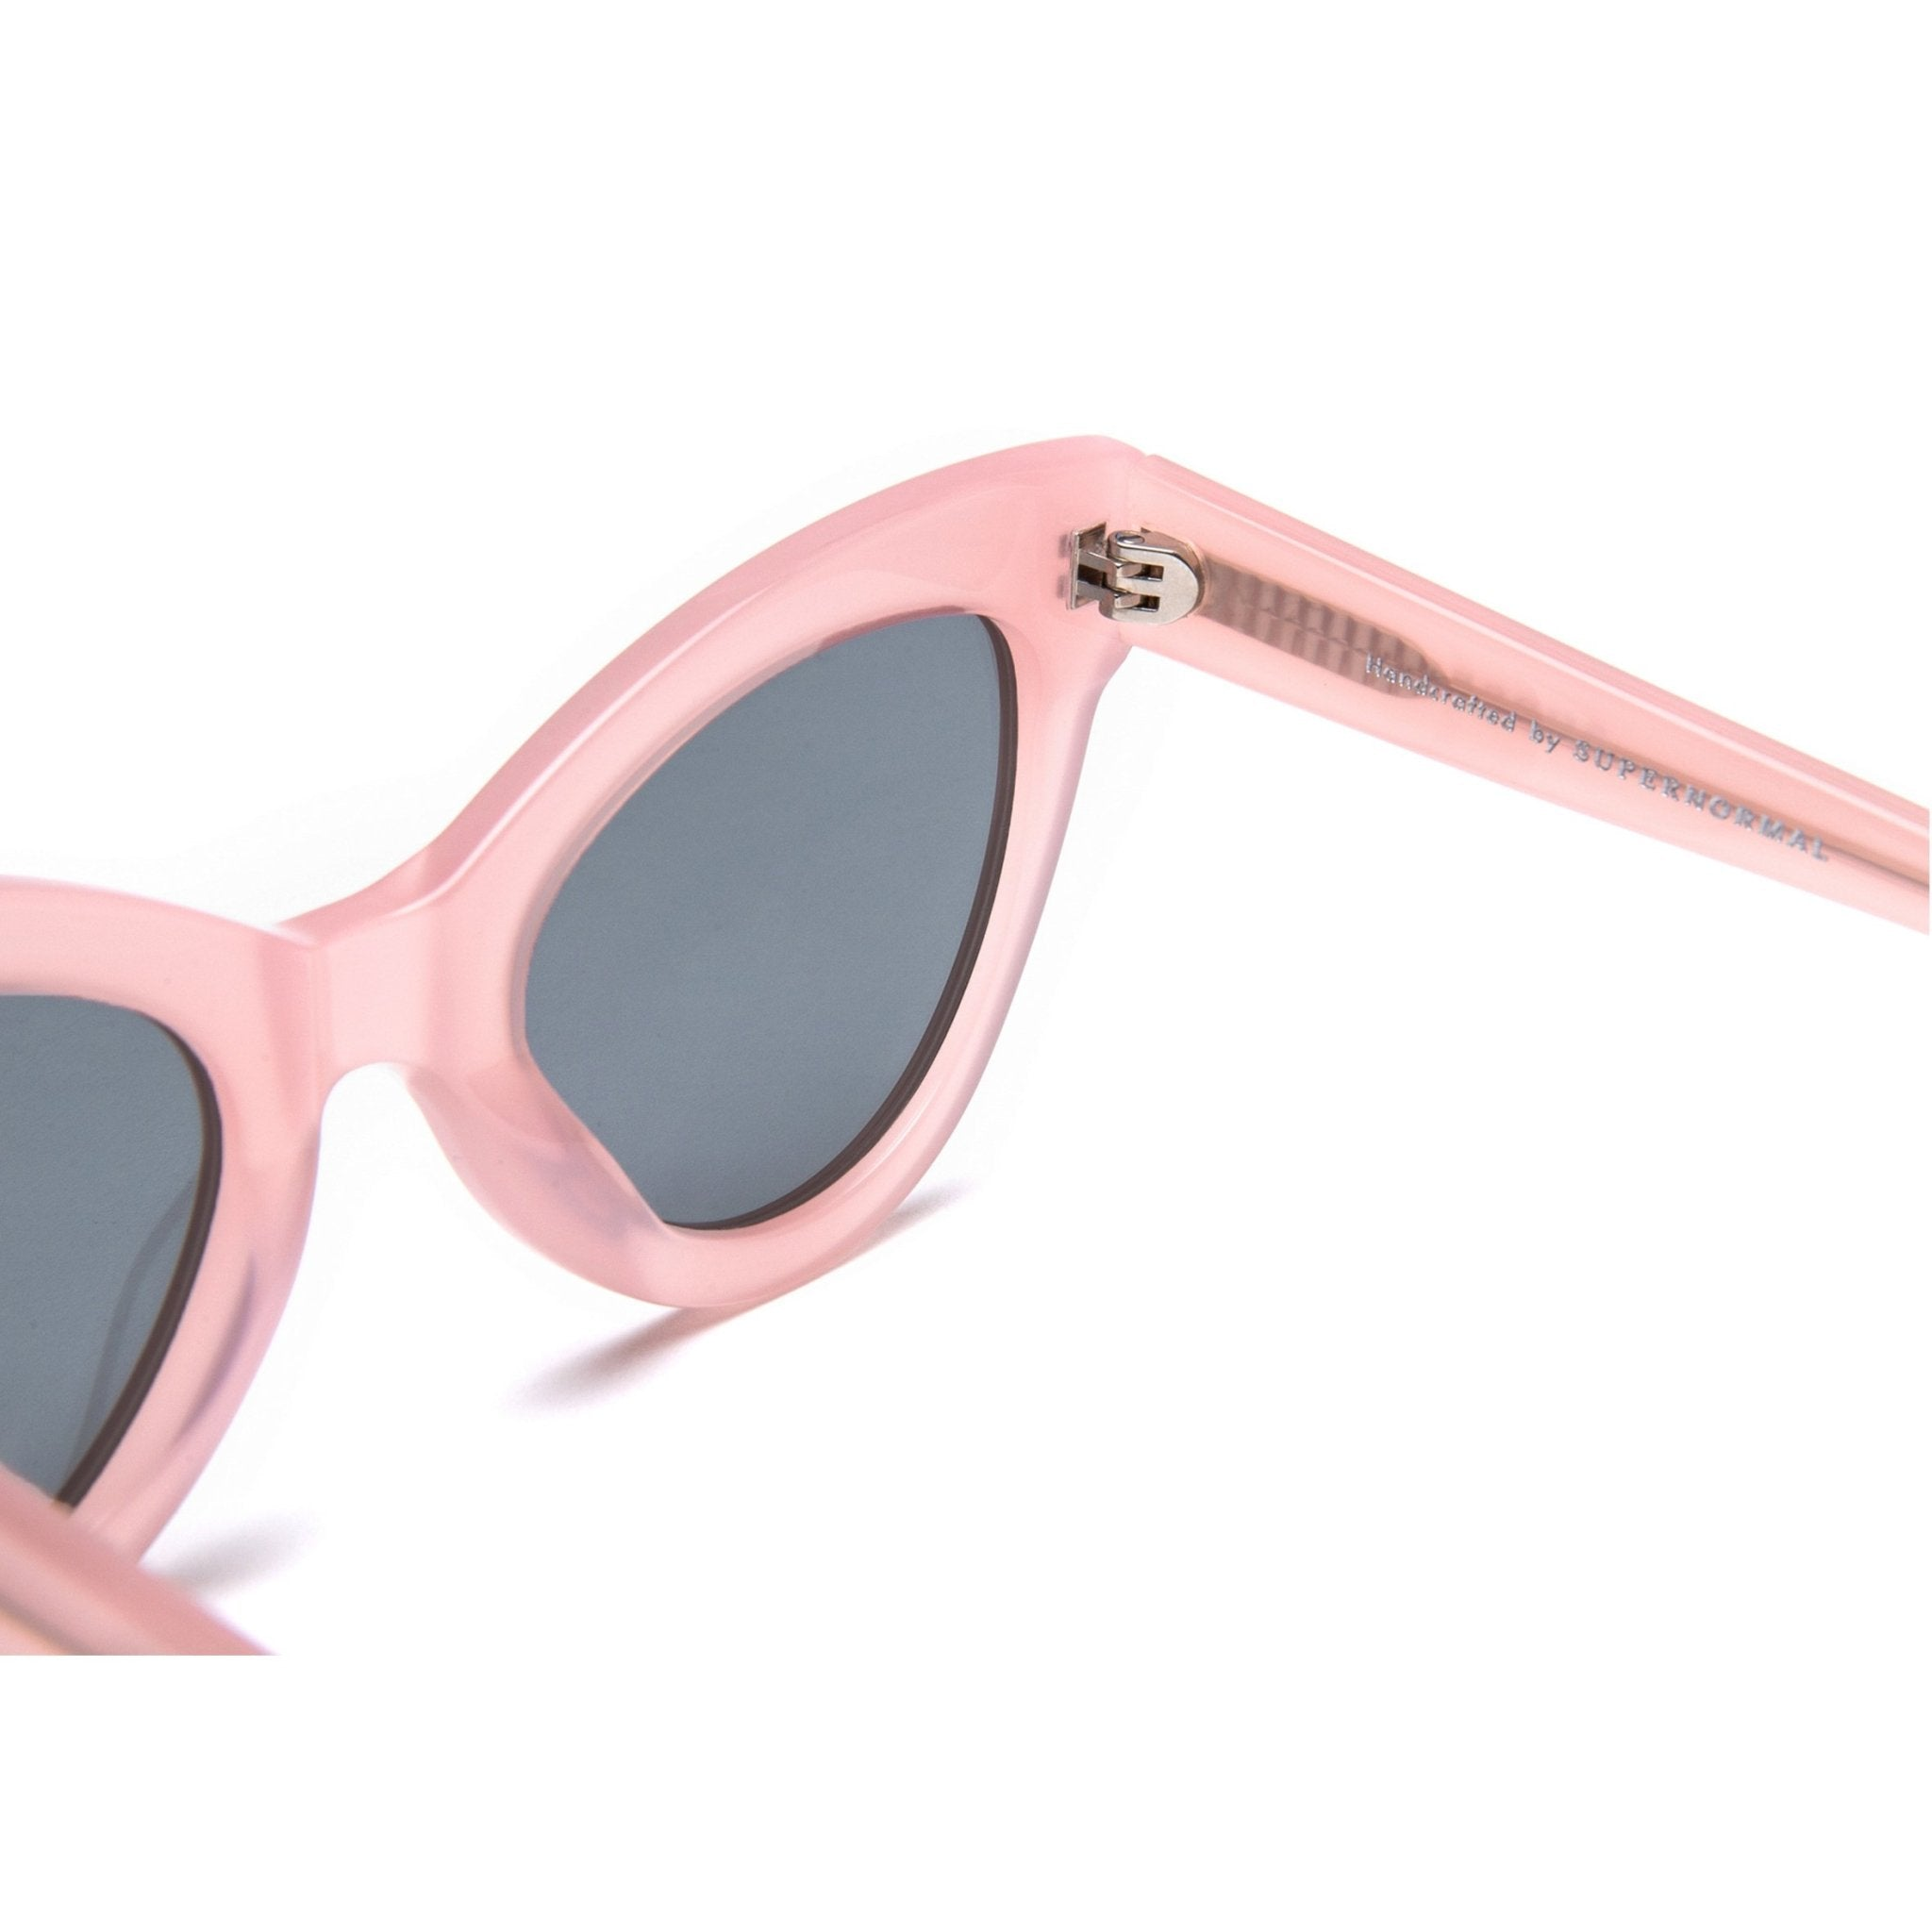 Magnetic Pink Frame Sunglasses - The Clothing LoungeSUPERNORMAL